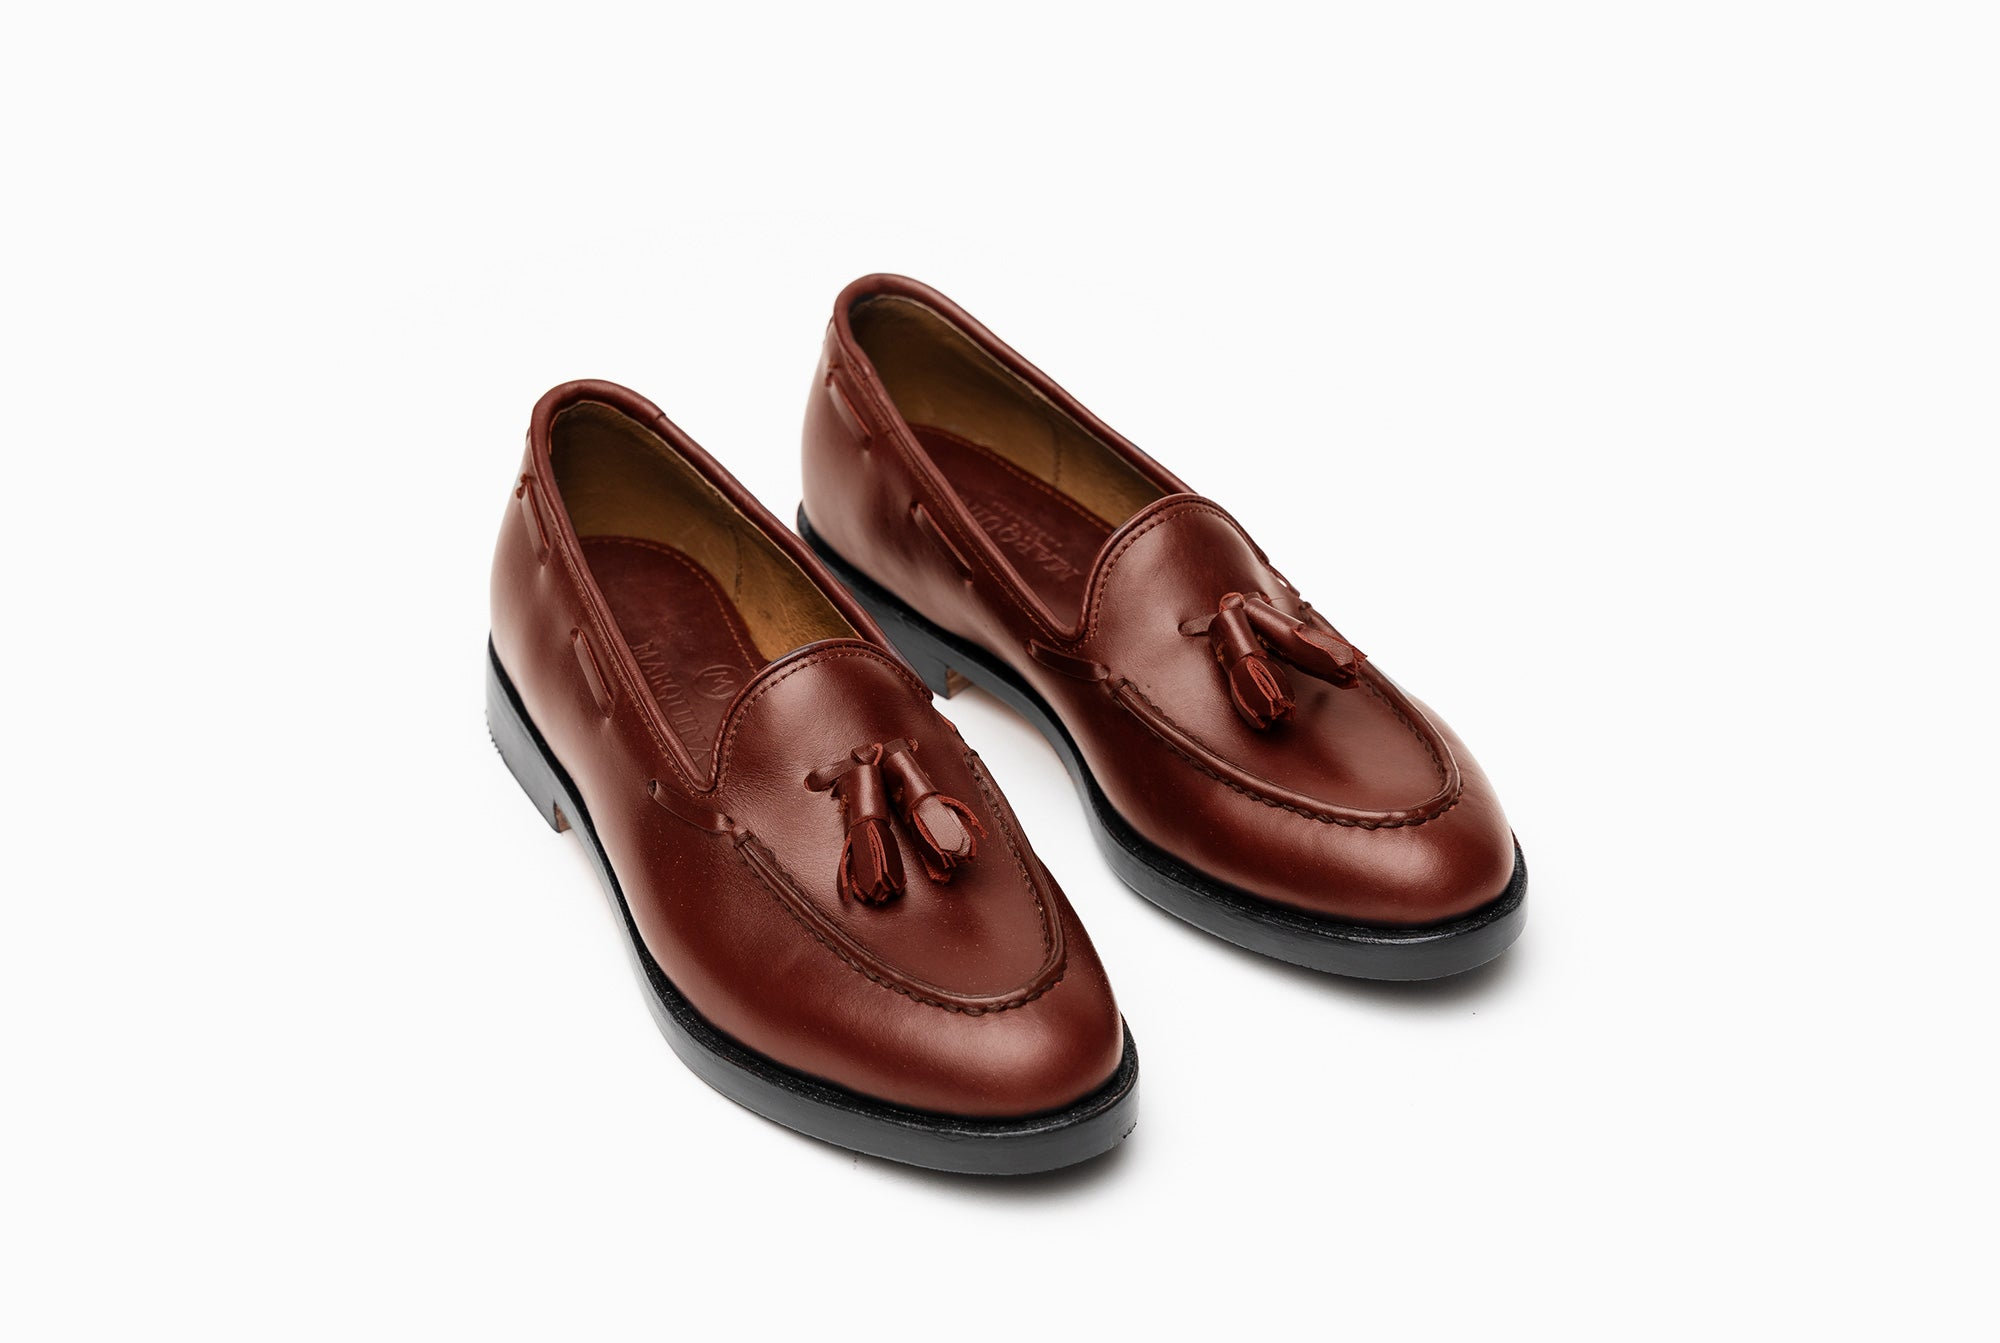 The Bonnie Tassel Loafers - Chestnut Brown - Marquina Shoemaker